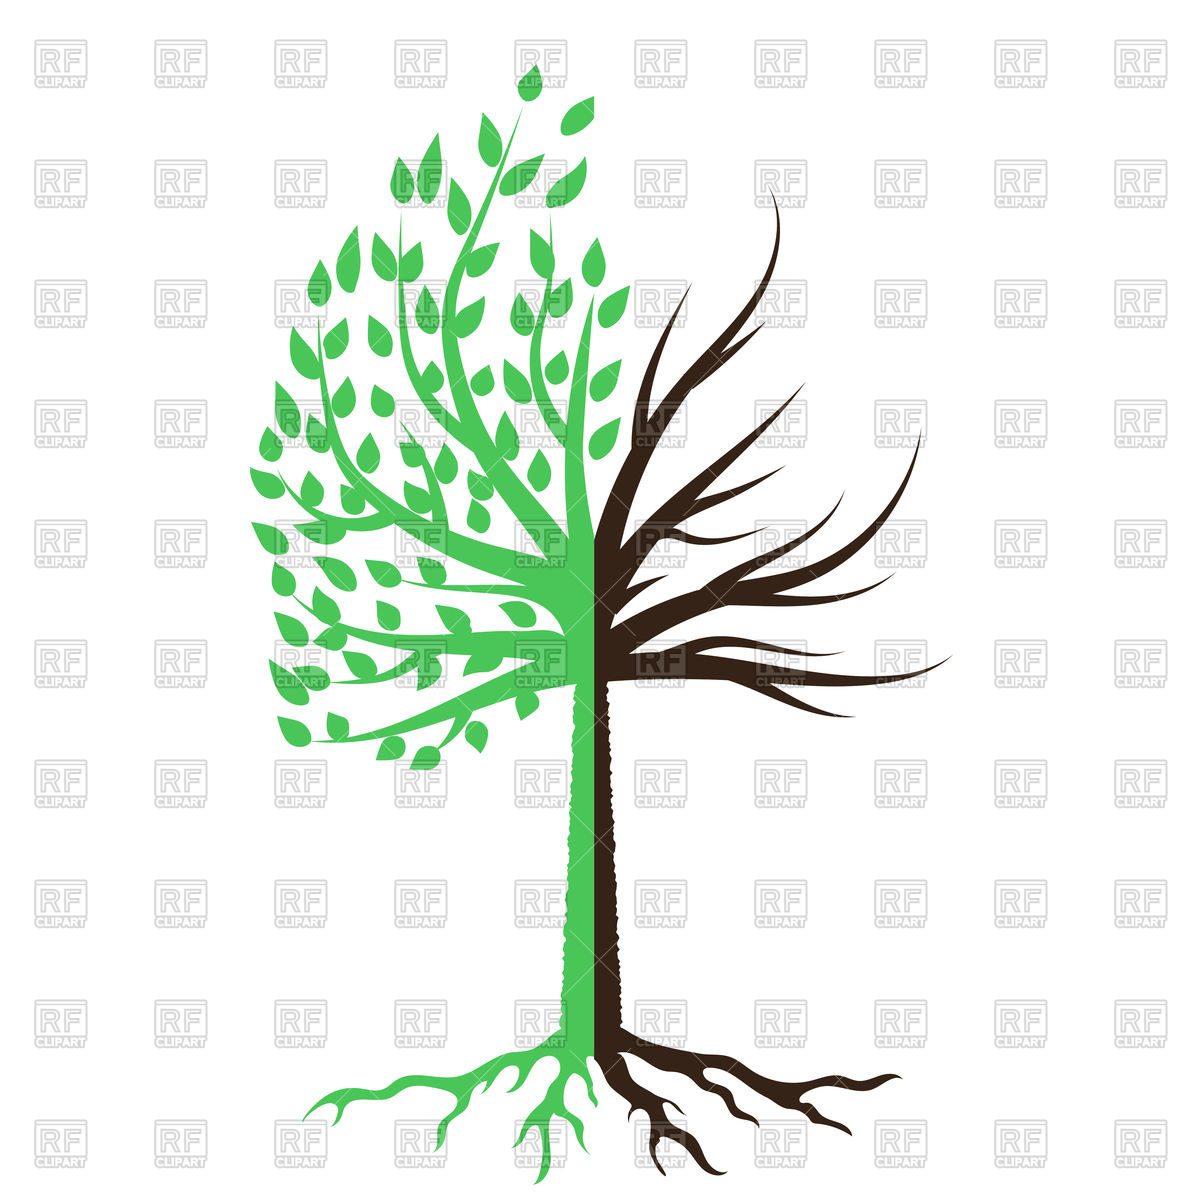 Empty Tree Cliparts   Free download on ClipArtMag